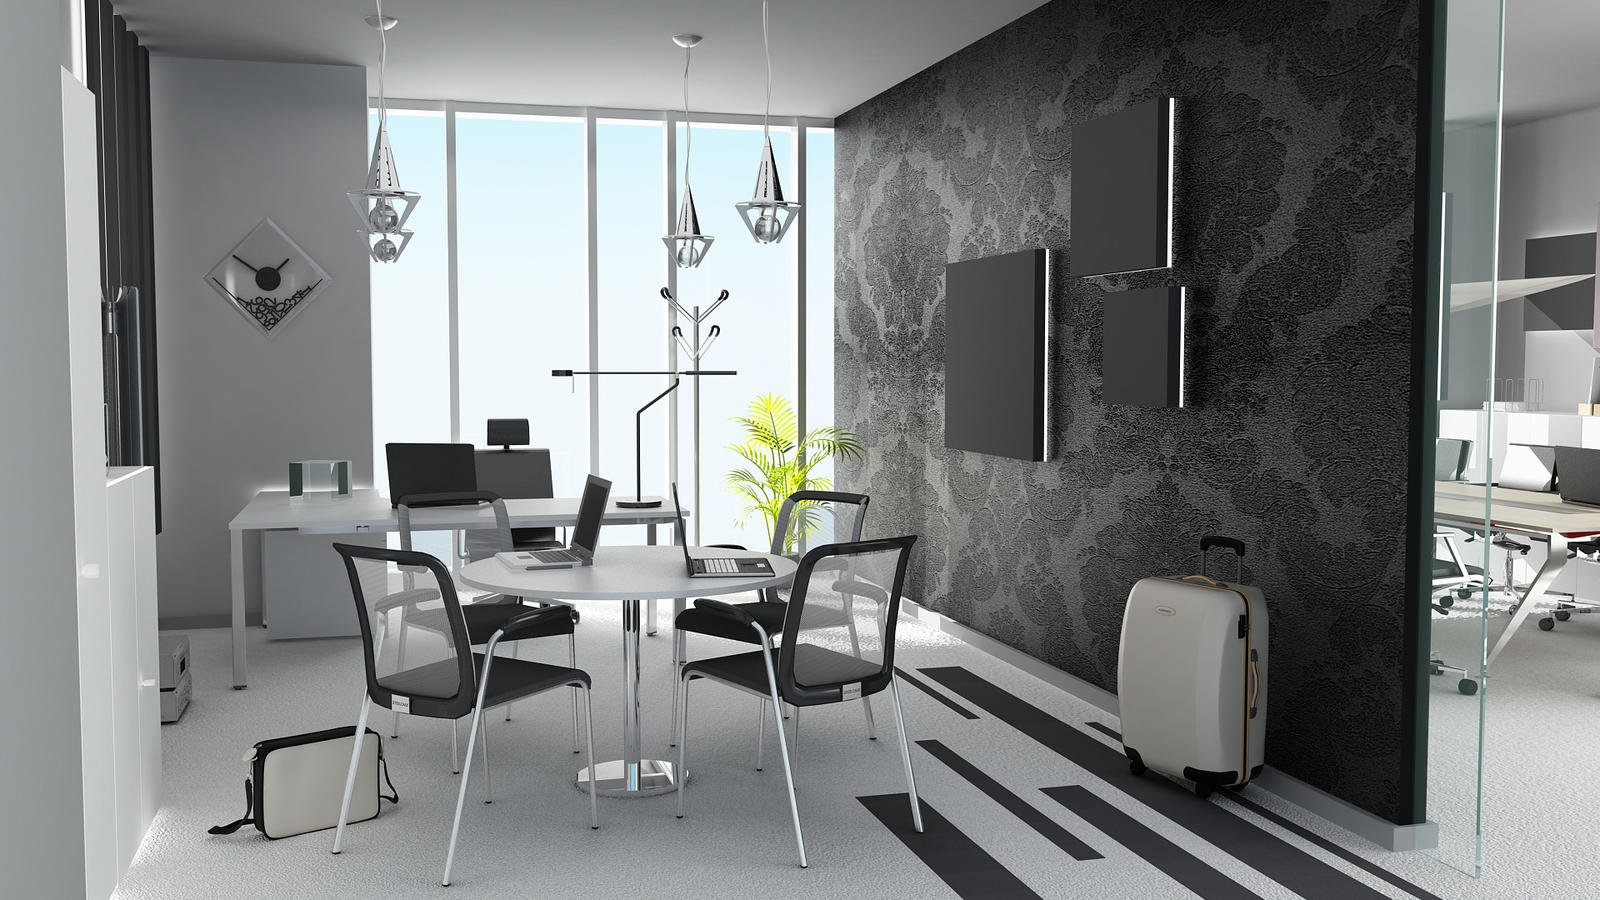 Design Black And White Office black and white office by shyntakun on deviantart shyntakun